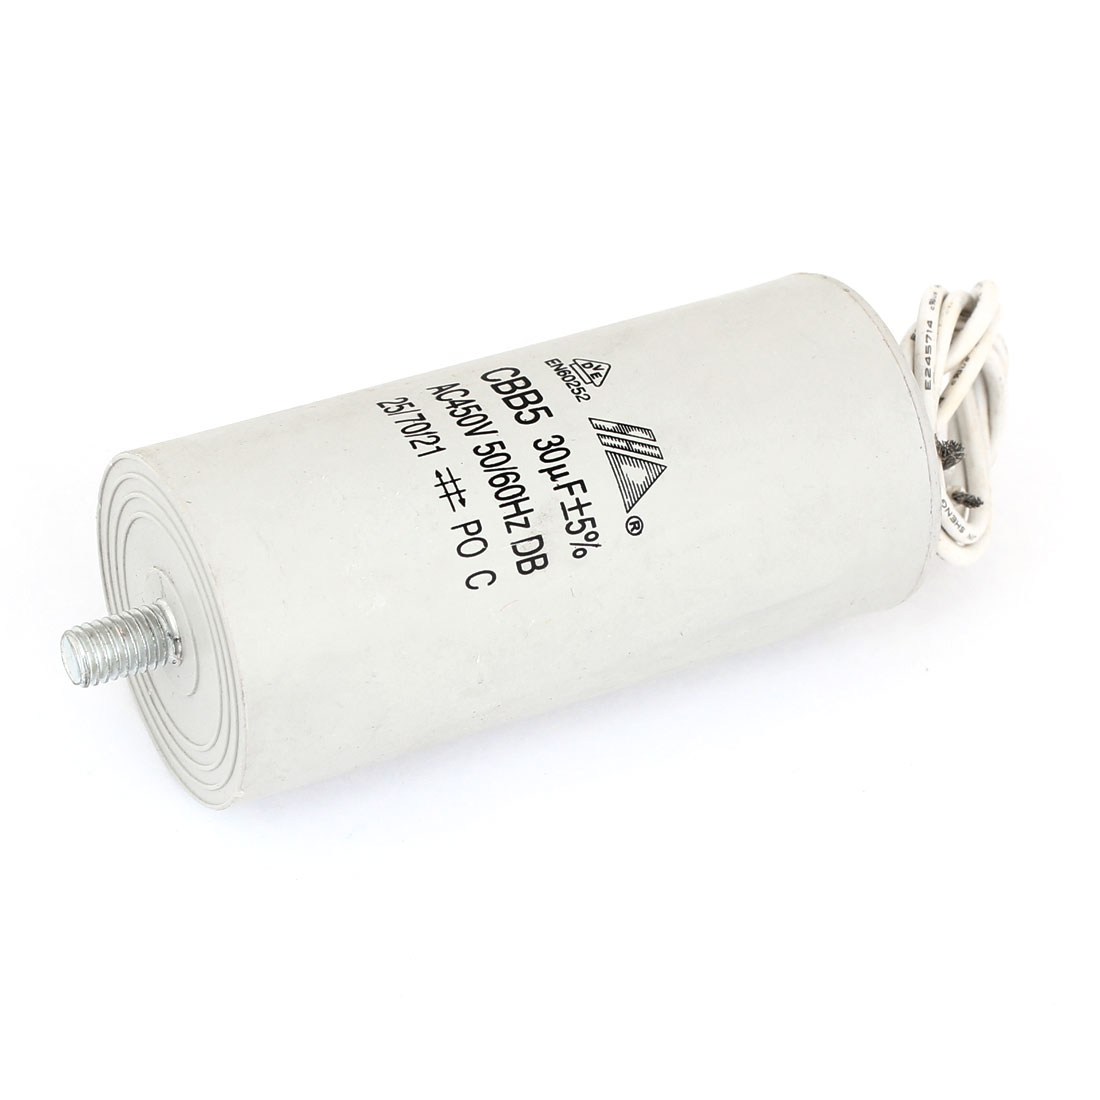 Threaded Rod CBB5 30uF Capacitance Motor Capacitor AC 450V